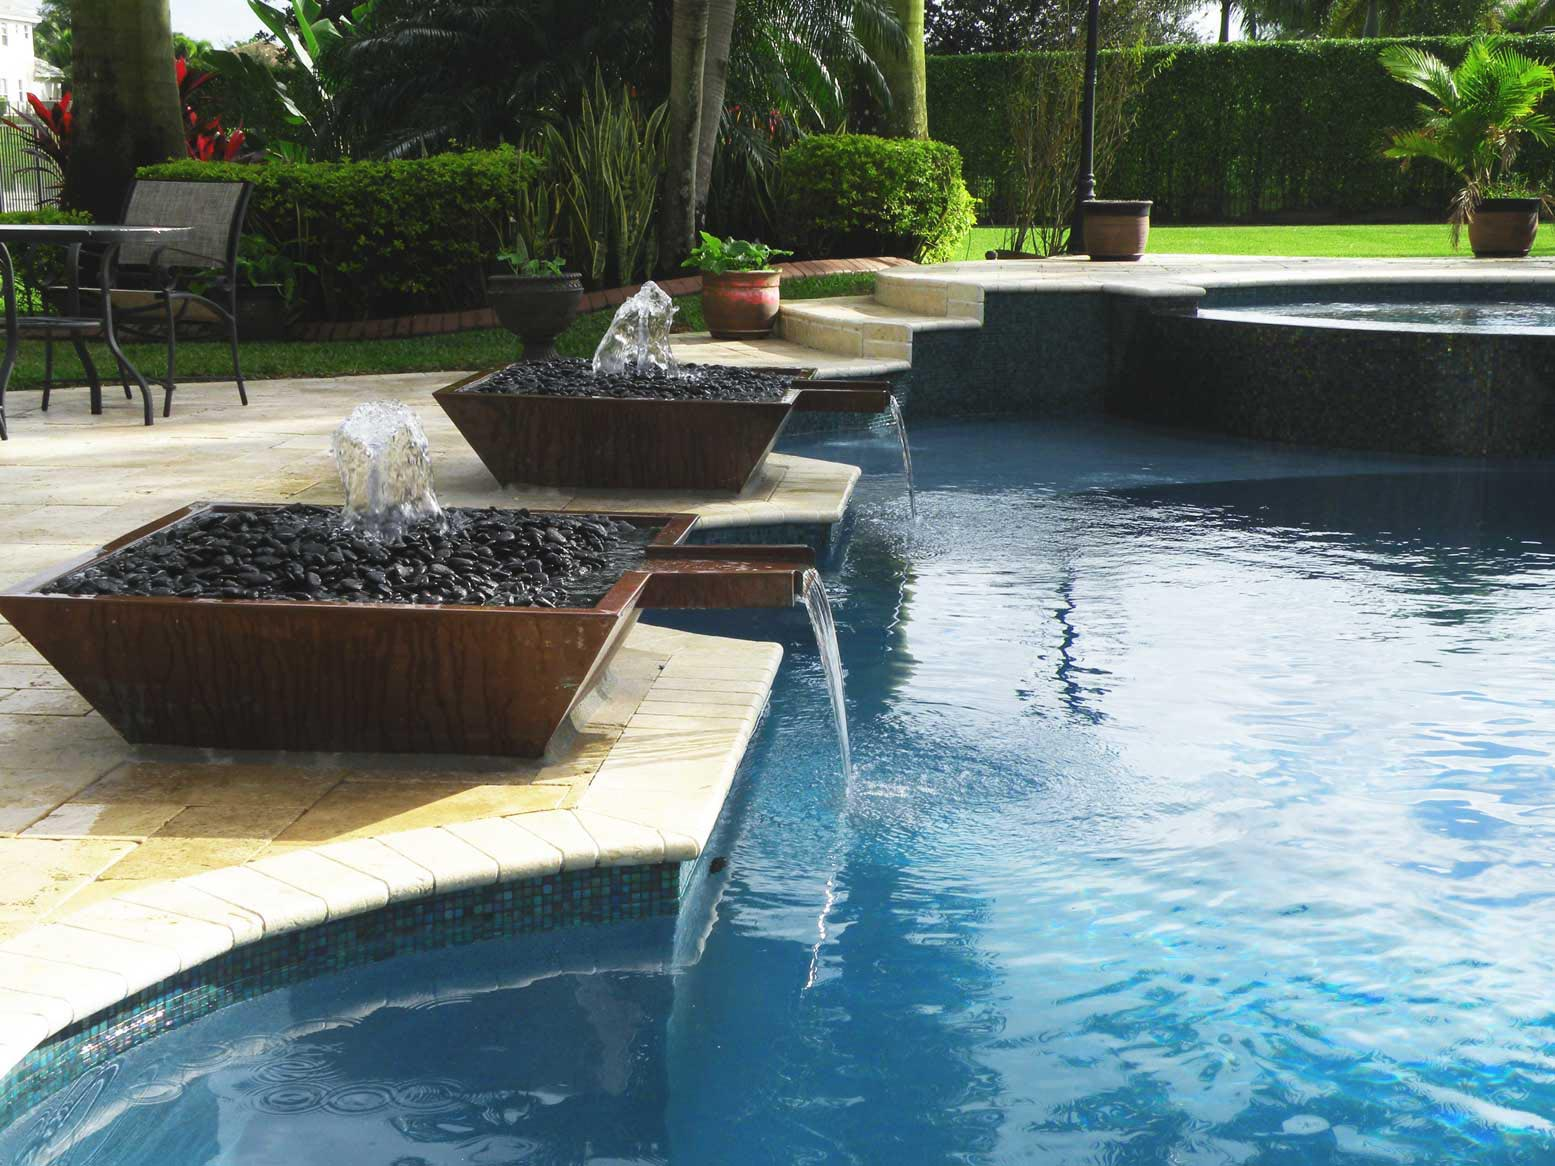 Swimming pool fountains waterfalls backyard design ideas for Swimming pool fountains waterfalls